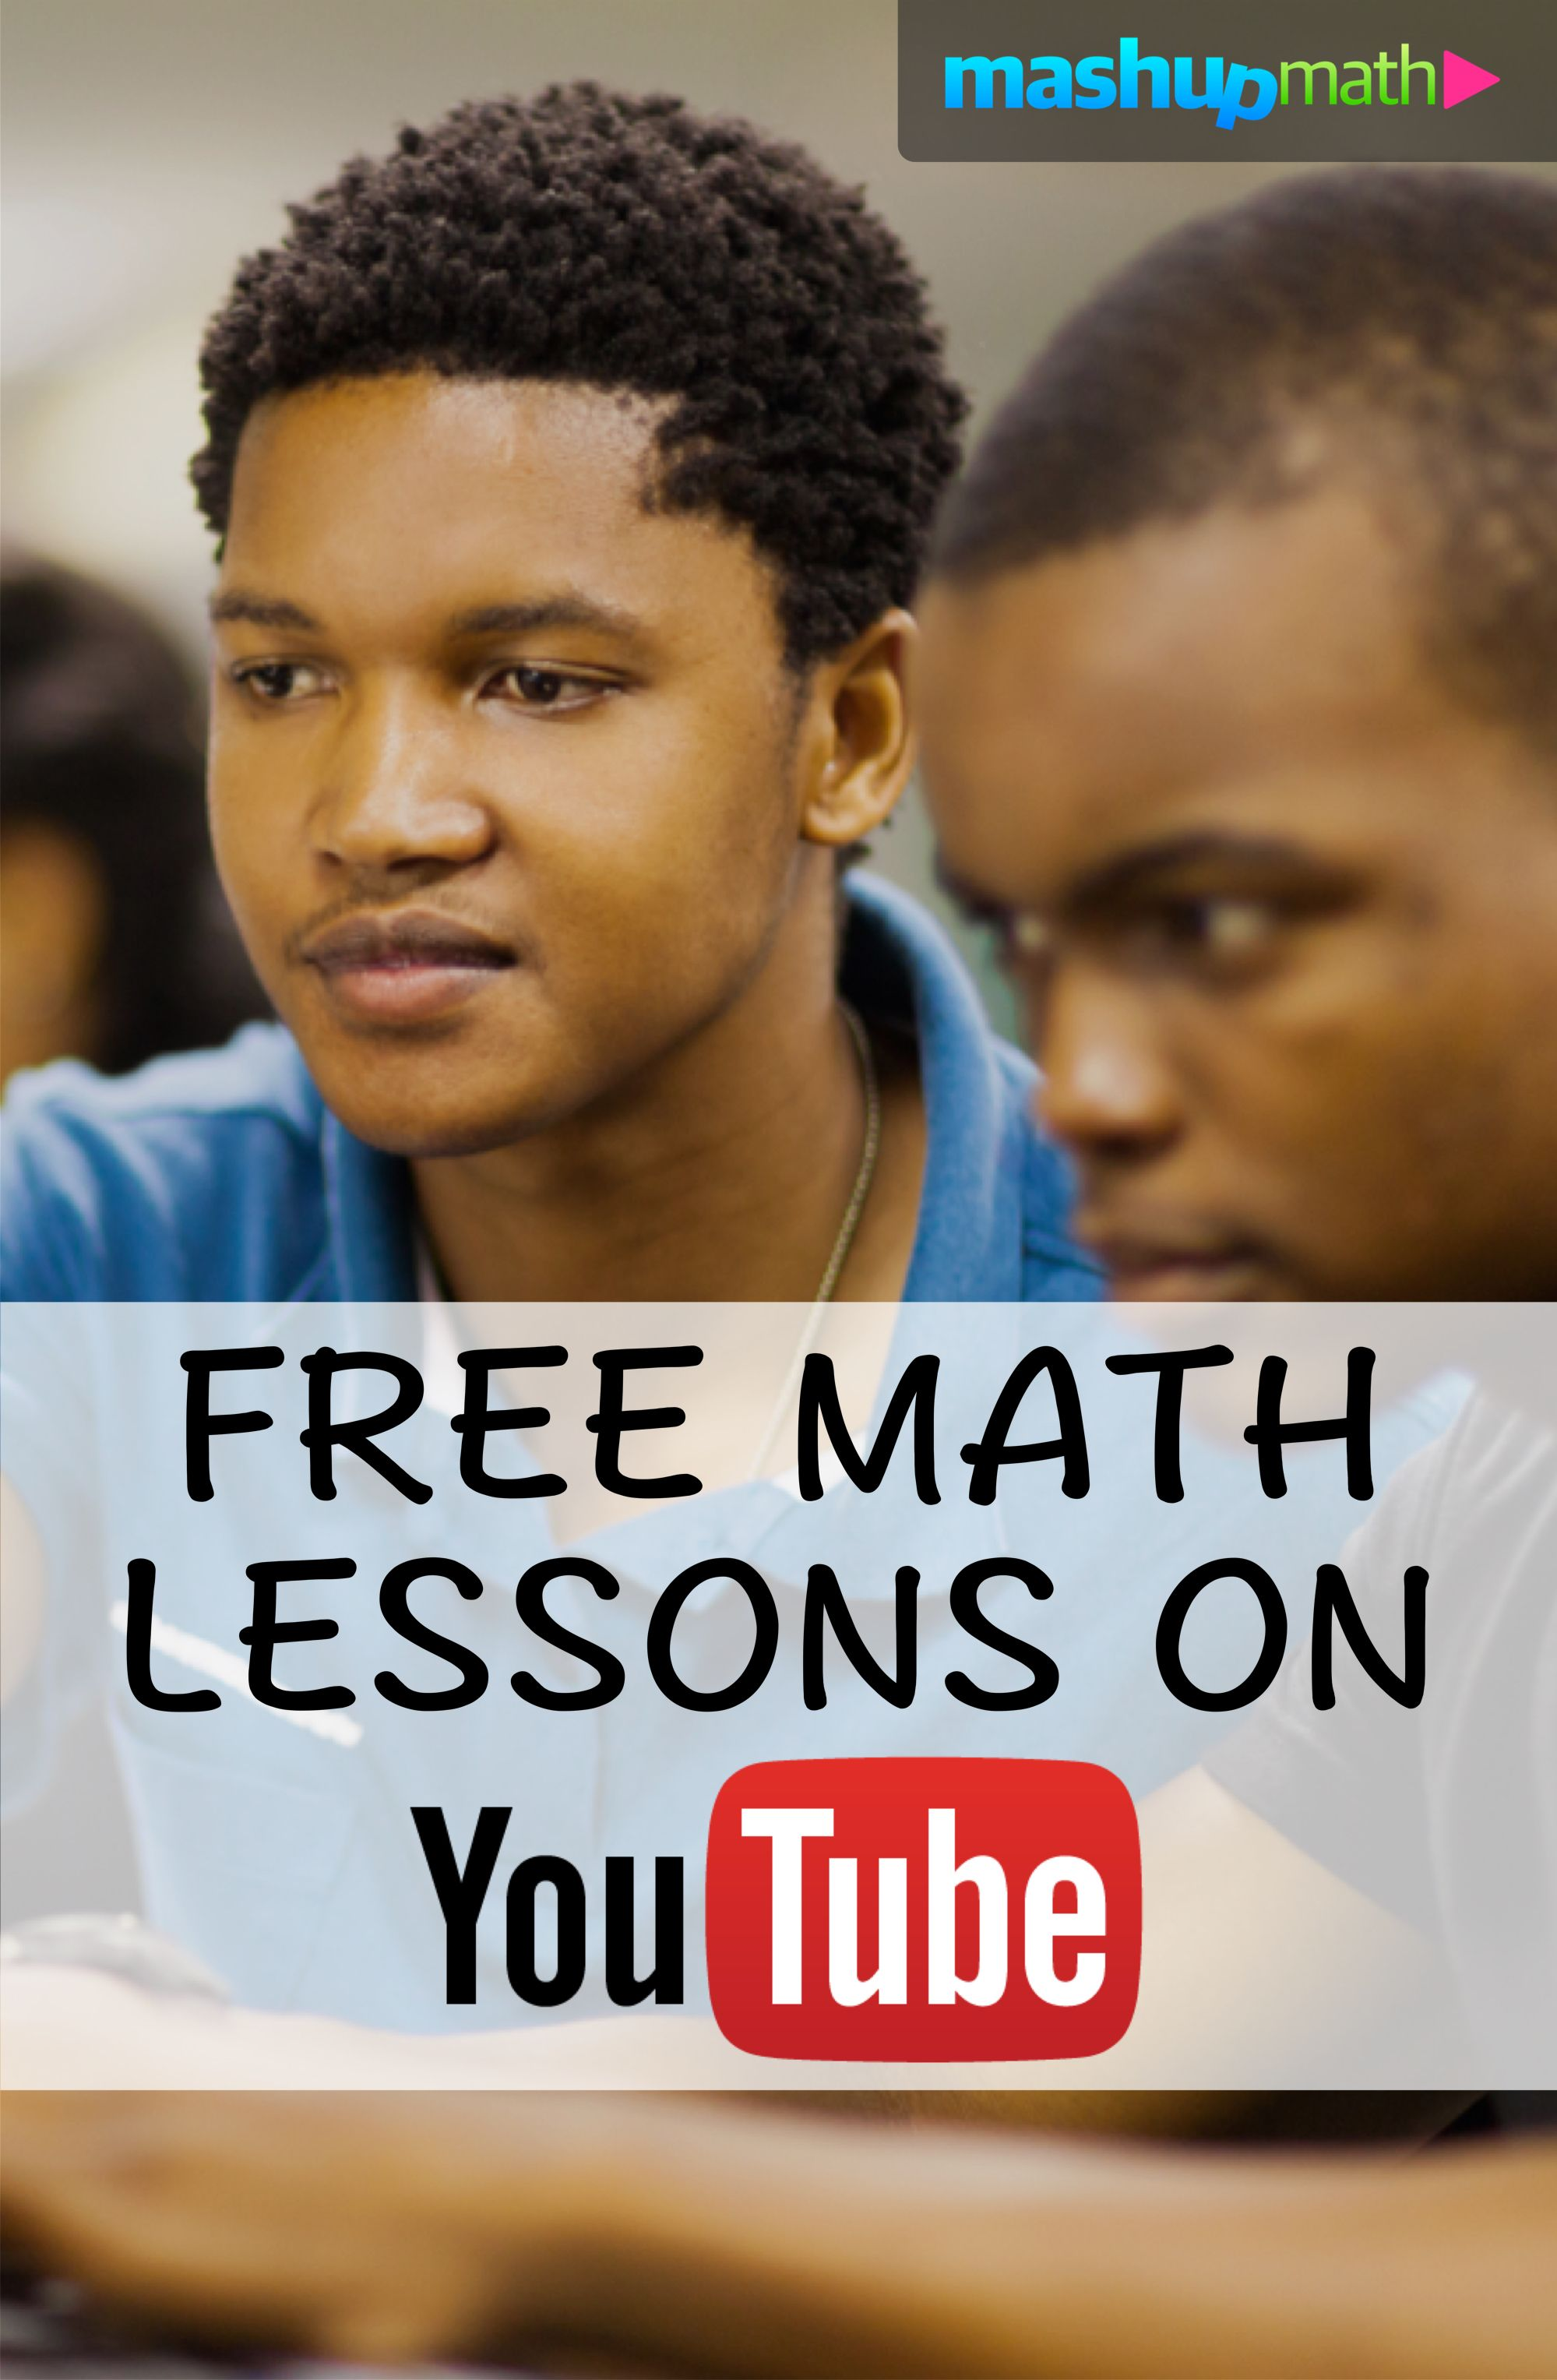 Access Our Library Of 100 Free Animated Math Lessons On